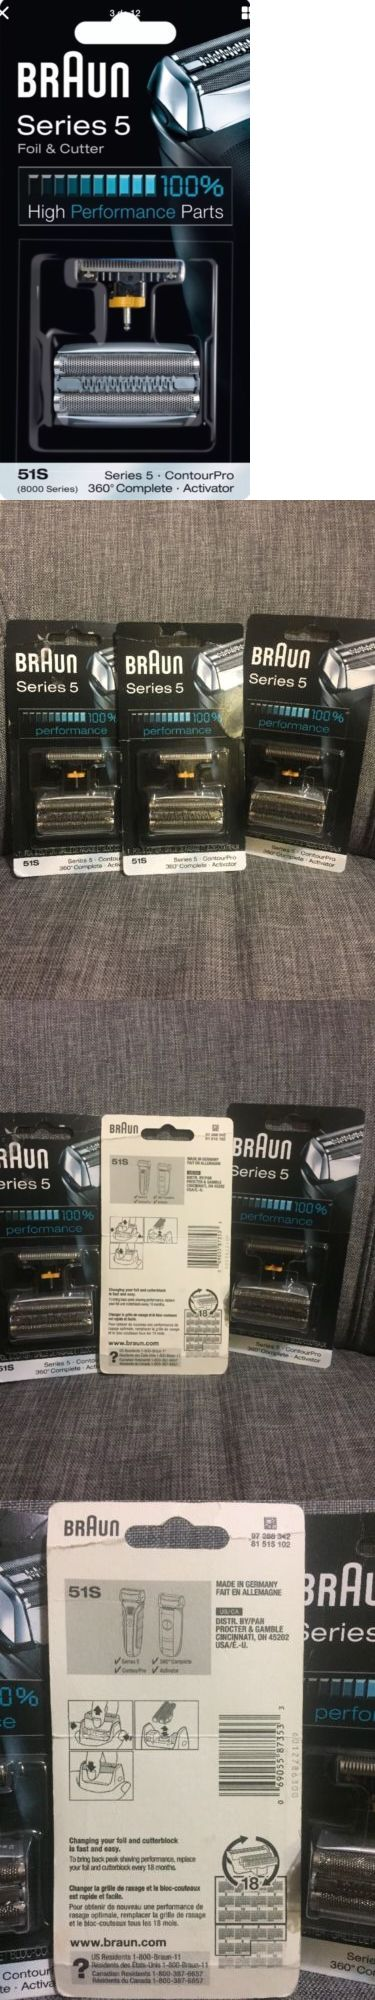 Shaver Parts and Accessories: Lot Of 3 Braun Series 5 51S Replacement Parts, Foil Head Shaver Razor Blade BUY IT NOW ONLY: $60.0